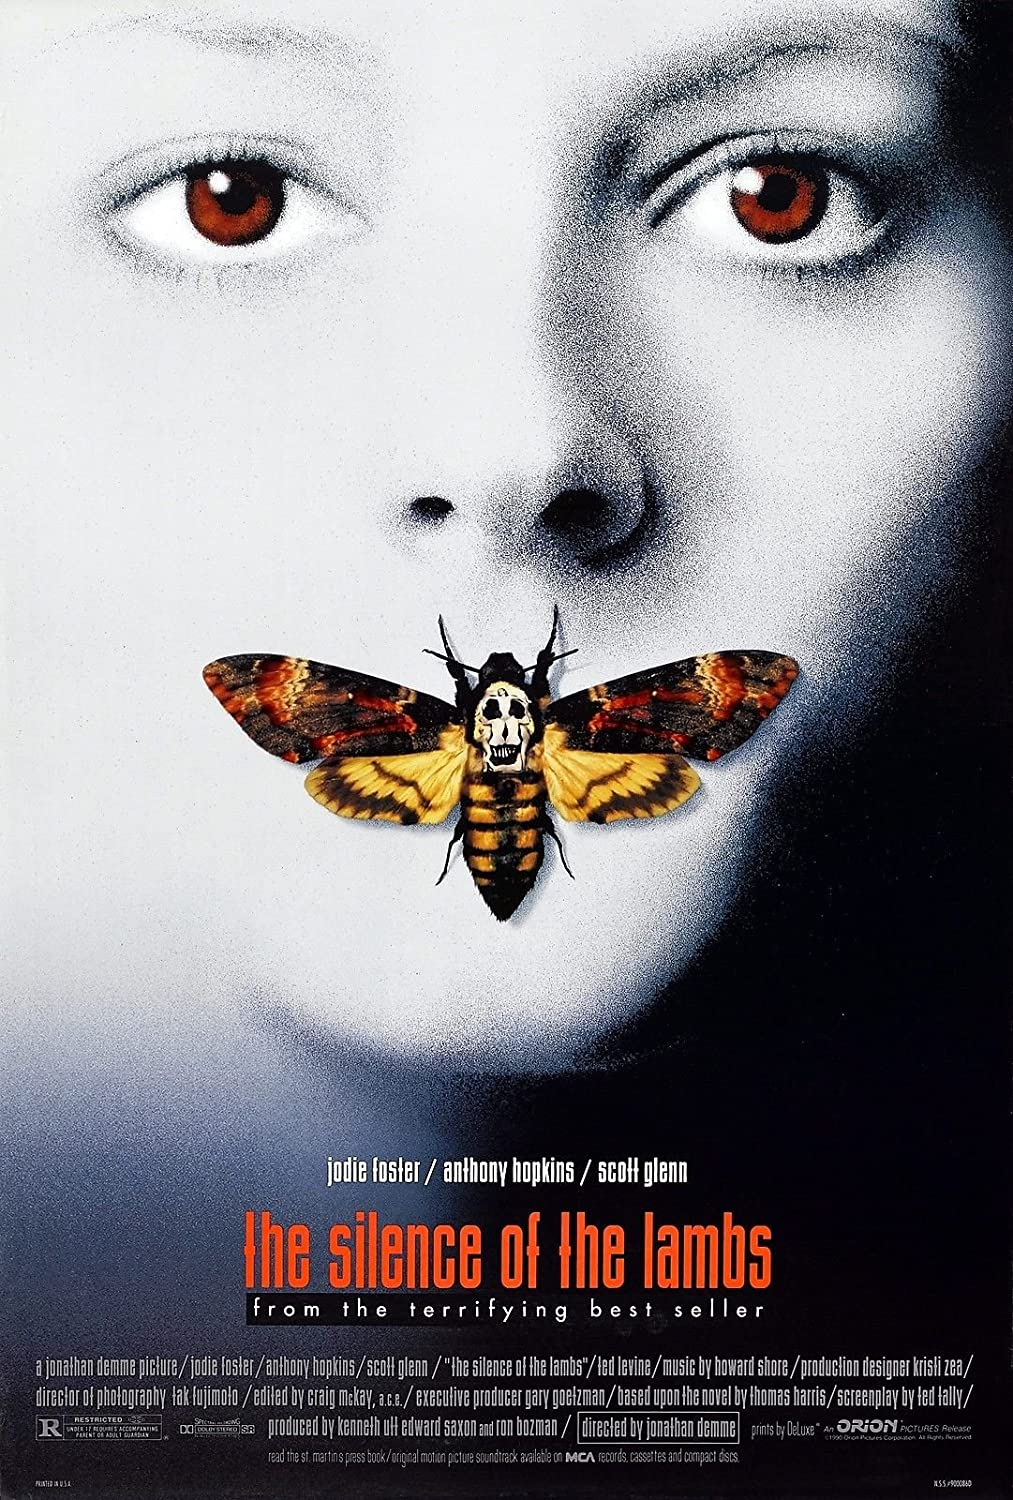 The Silence of the Lambs - The First 10 Minutes - thescriptblog.com